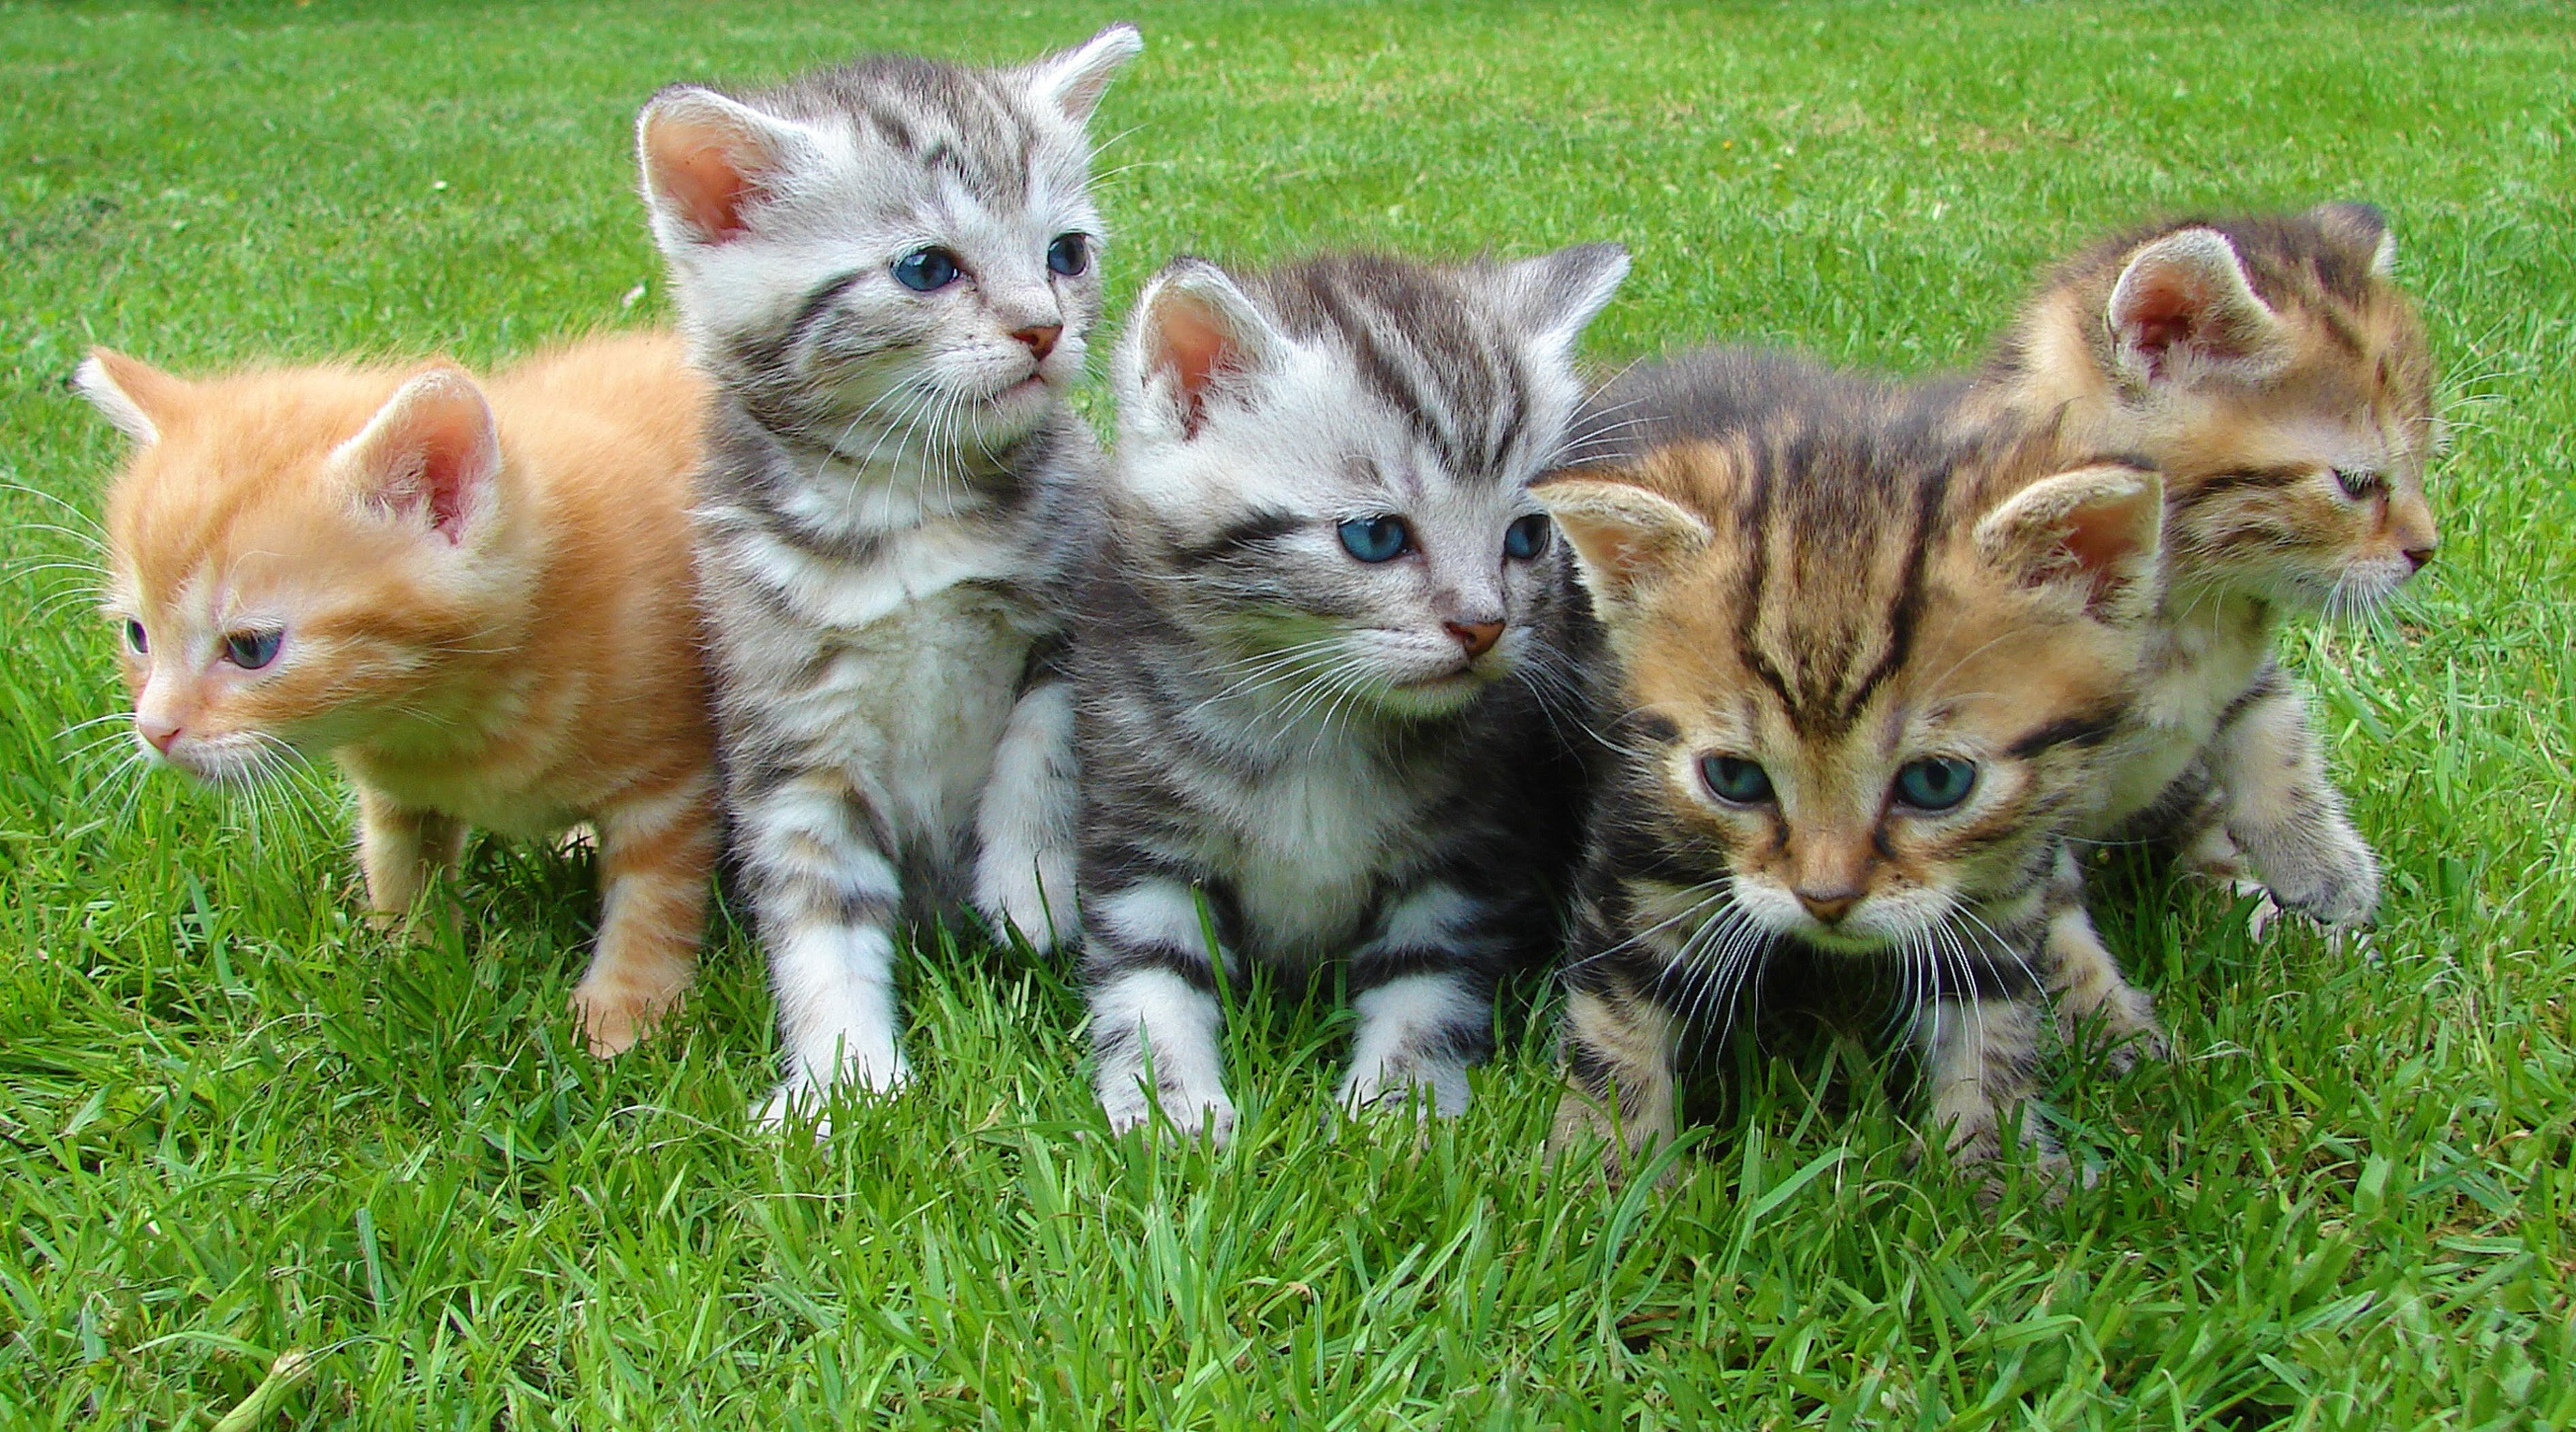 kittens-cat-cat-puppy-rush